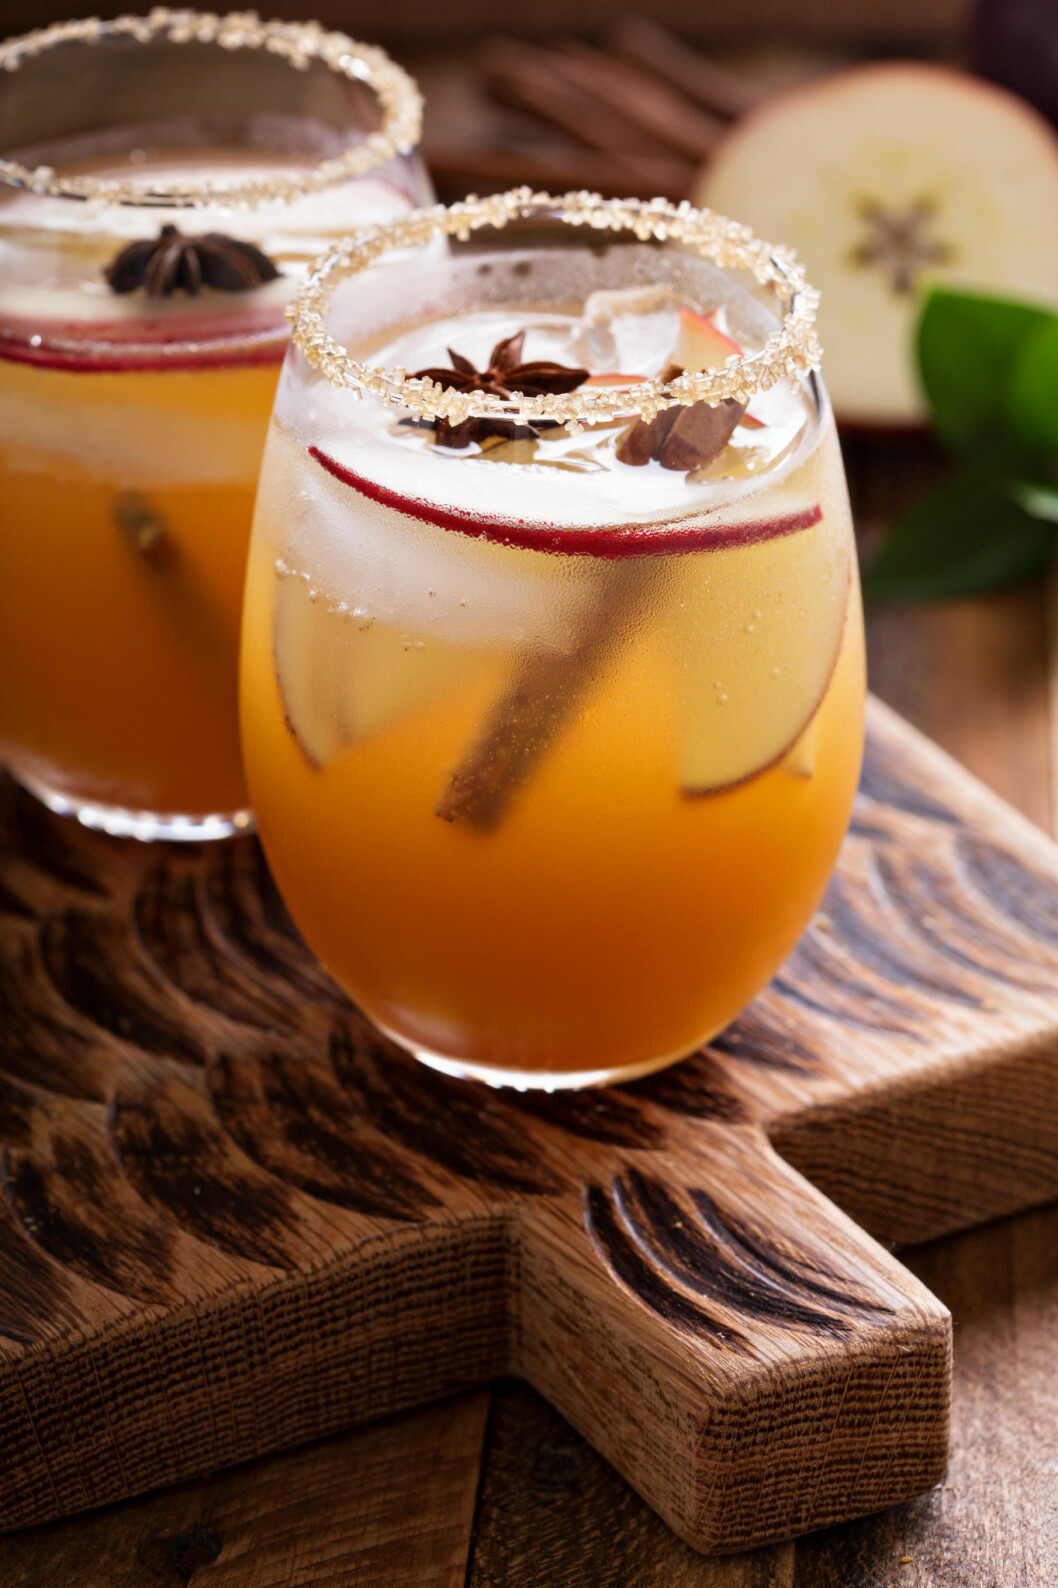 Apple cider cocktail with cinnamon and apple slices